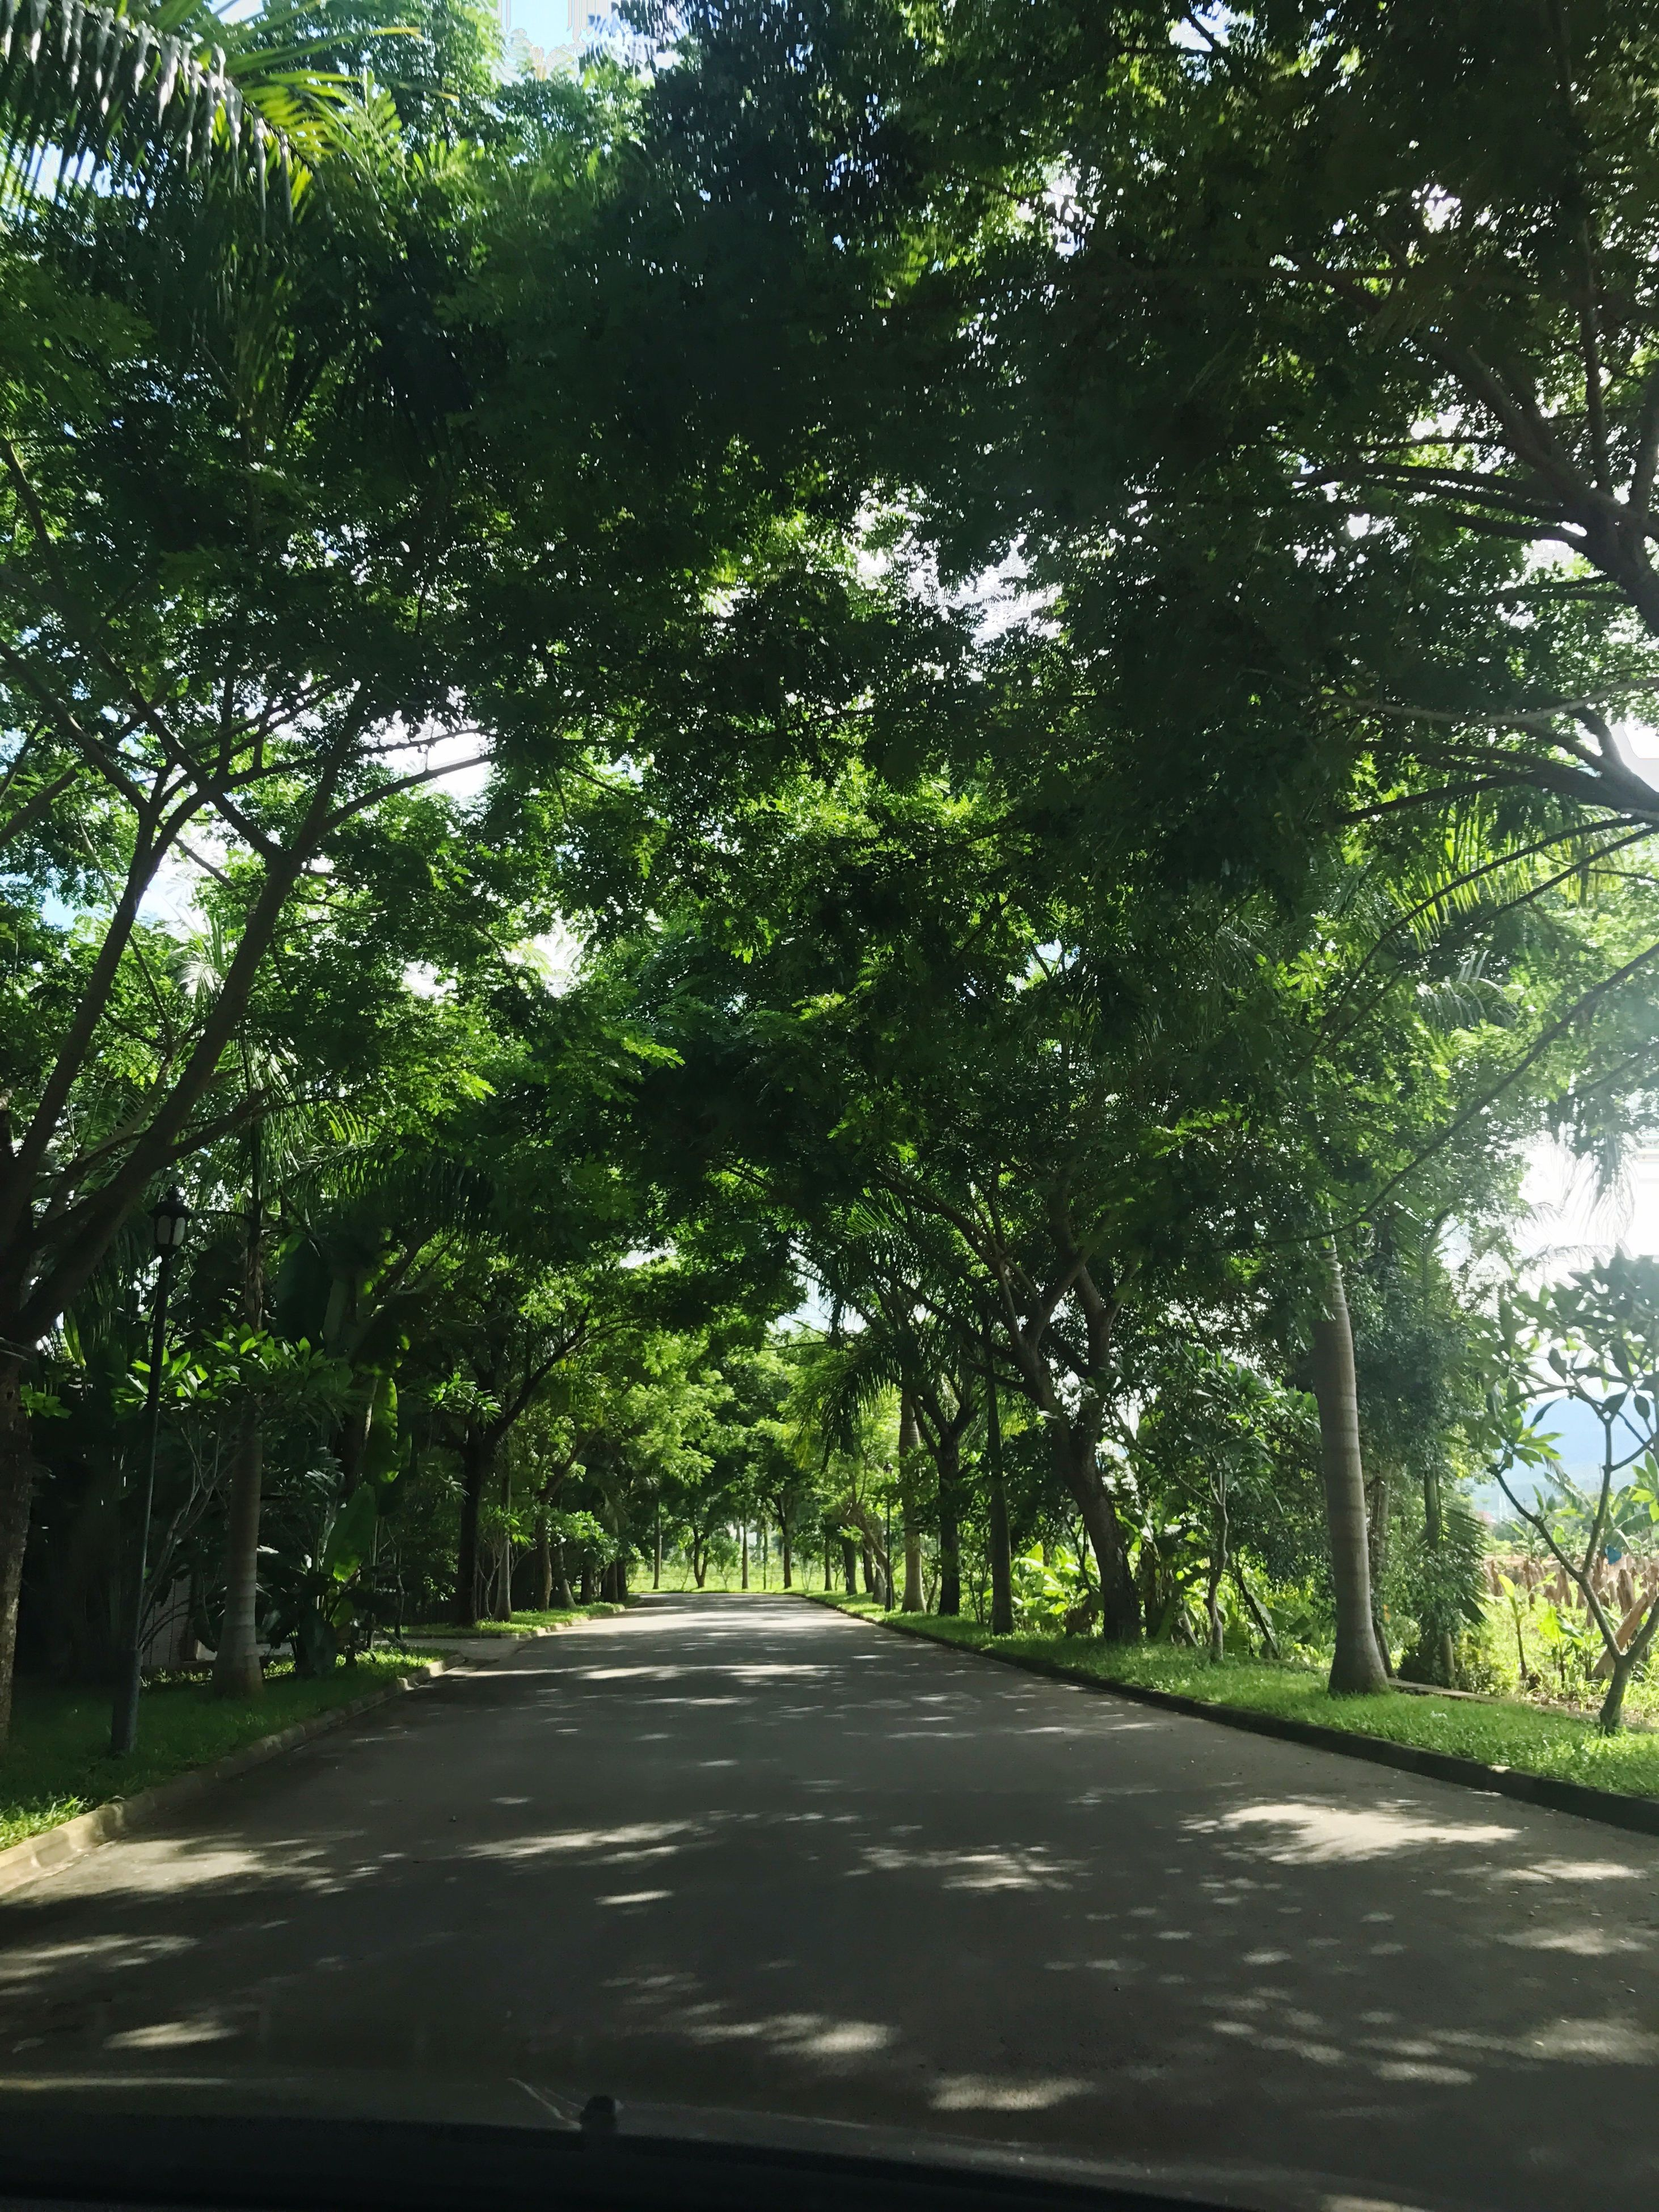 tree, the way forward, nature, growth, tranquility, road, day, tranquil scene, no people, outdoors, beauty in nature, green color, transportation, scenics, branch